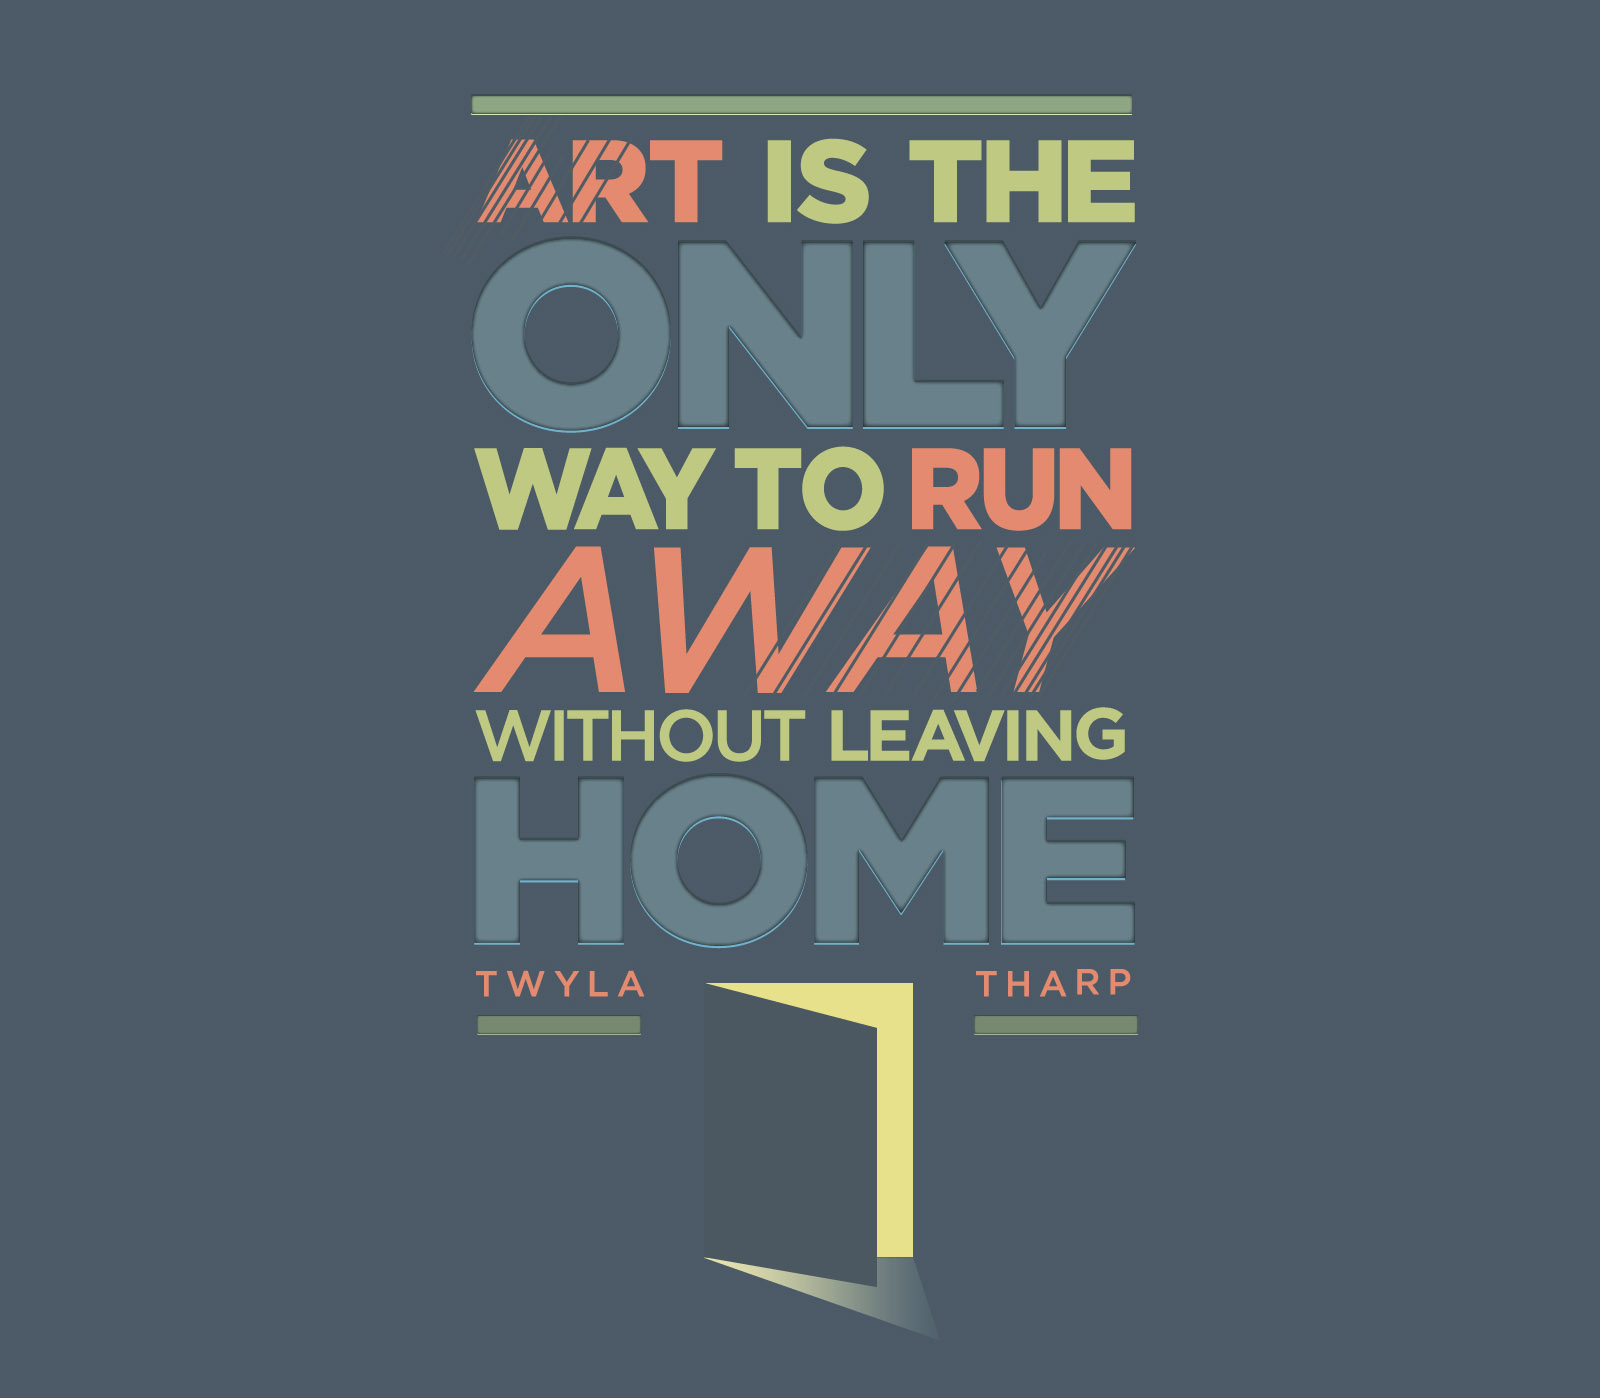 Great Graphic Design Quotes: 64 Top Art Quotes And Sayings